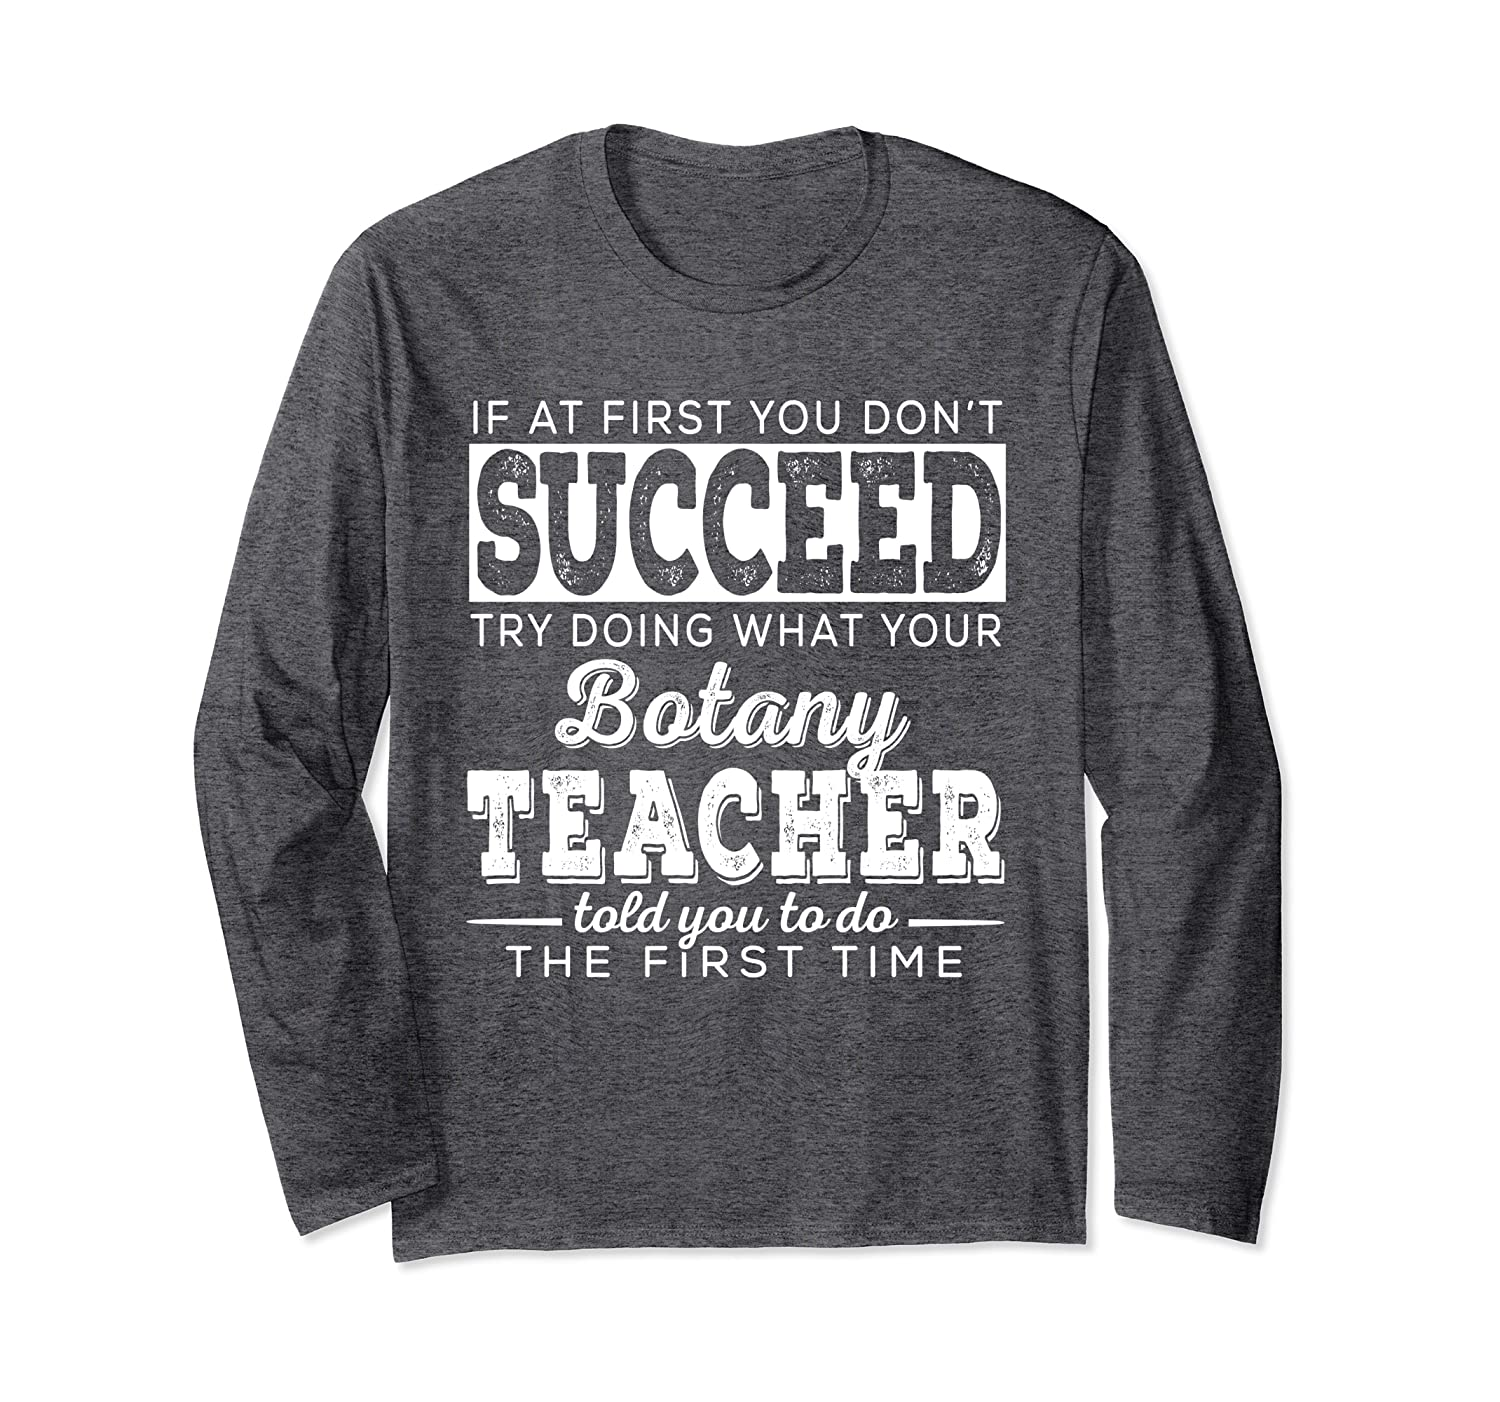 Best Botany Science Teacher Gifts  First You Don't Succeed Long Sleeve T-Shirt